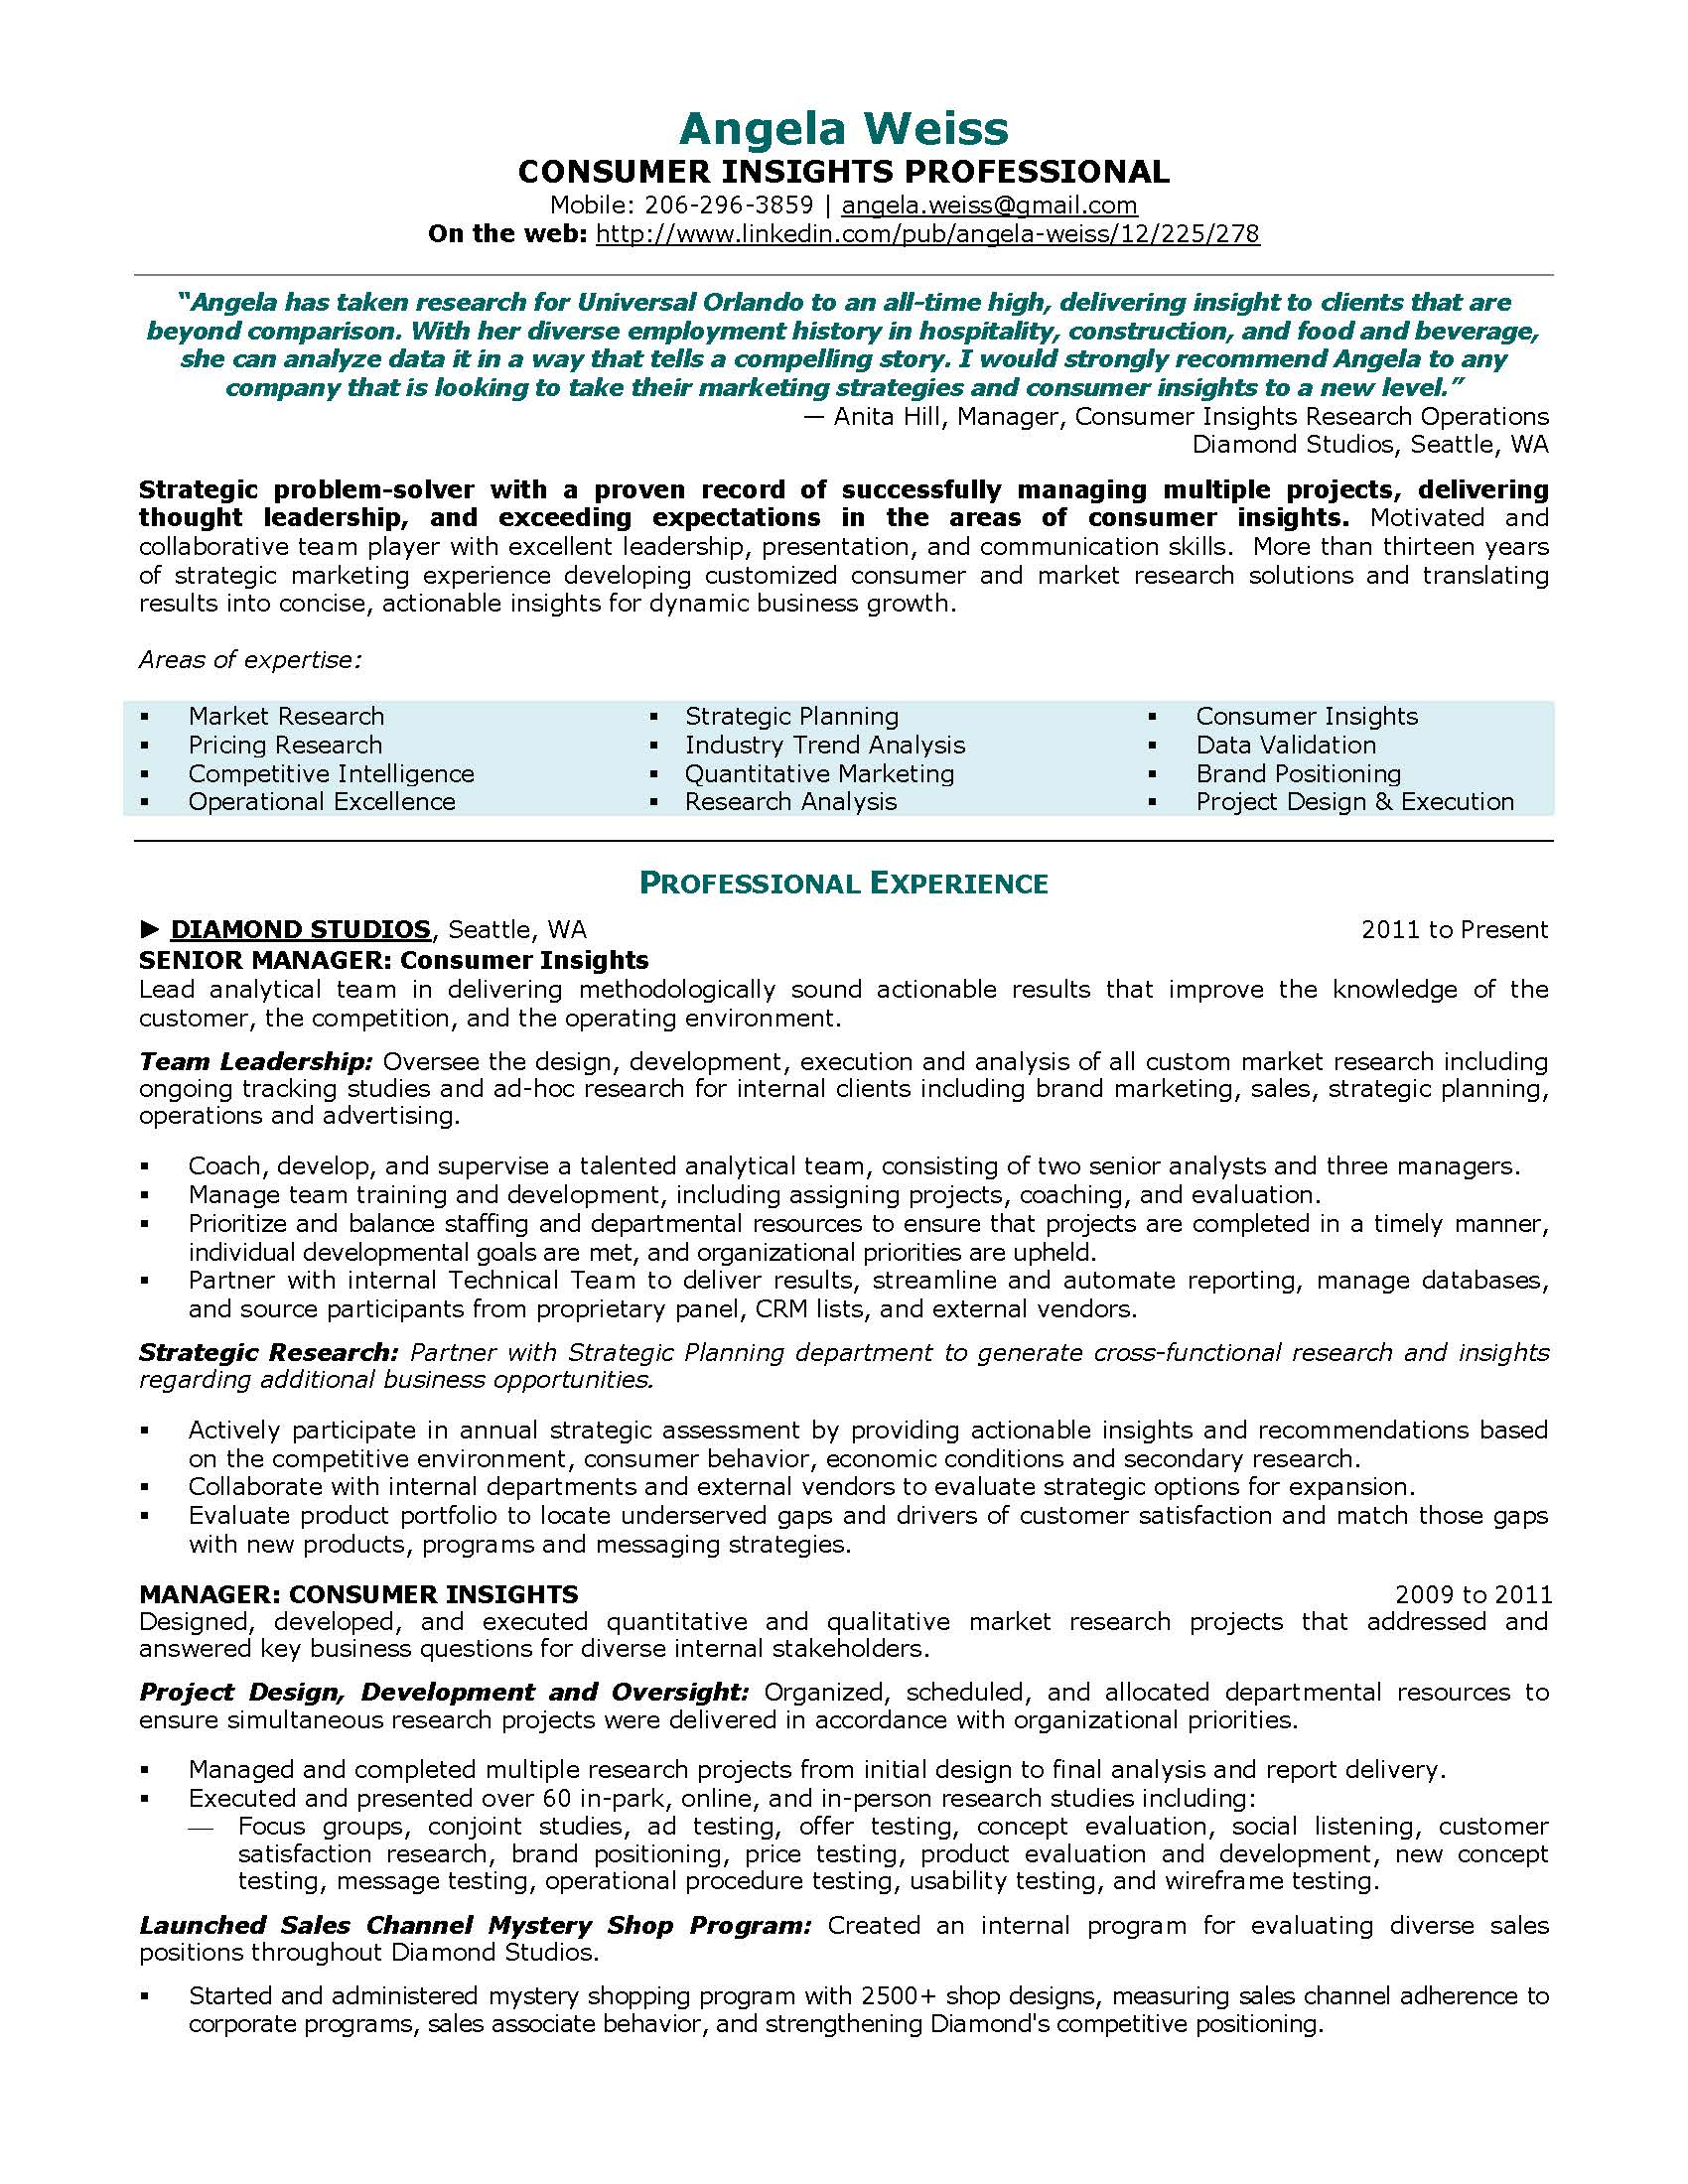 consumer insights resume sample provided by elite resume writing services. Resume Example. Resume CV Cover Letter